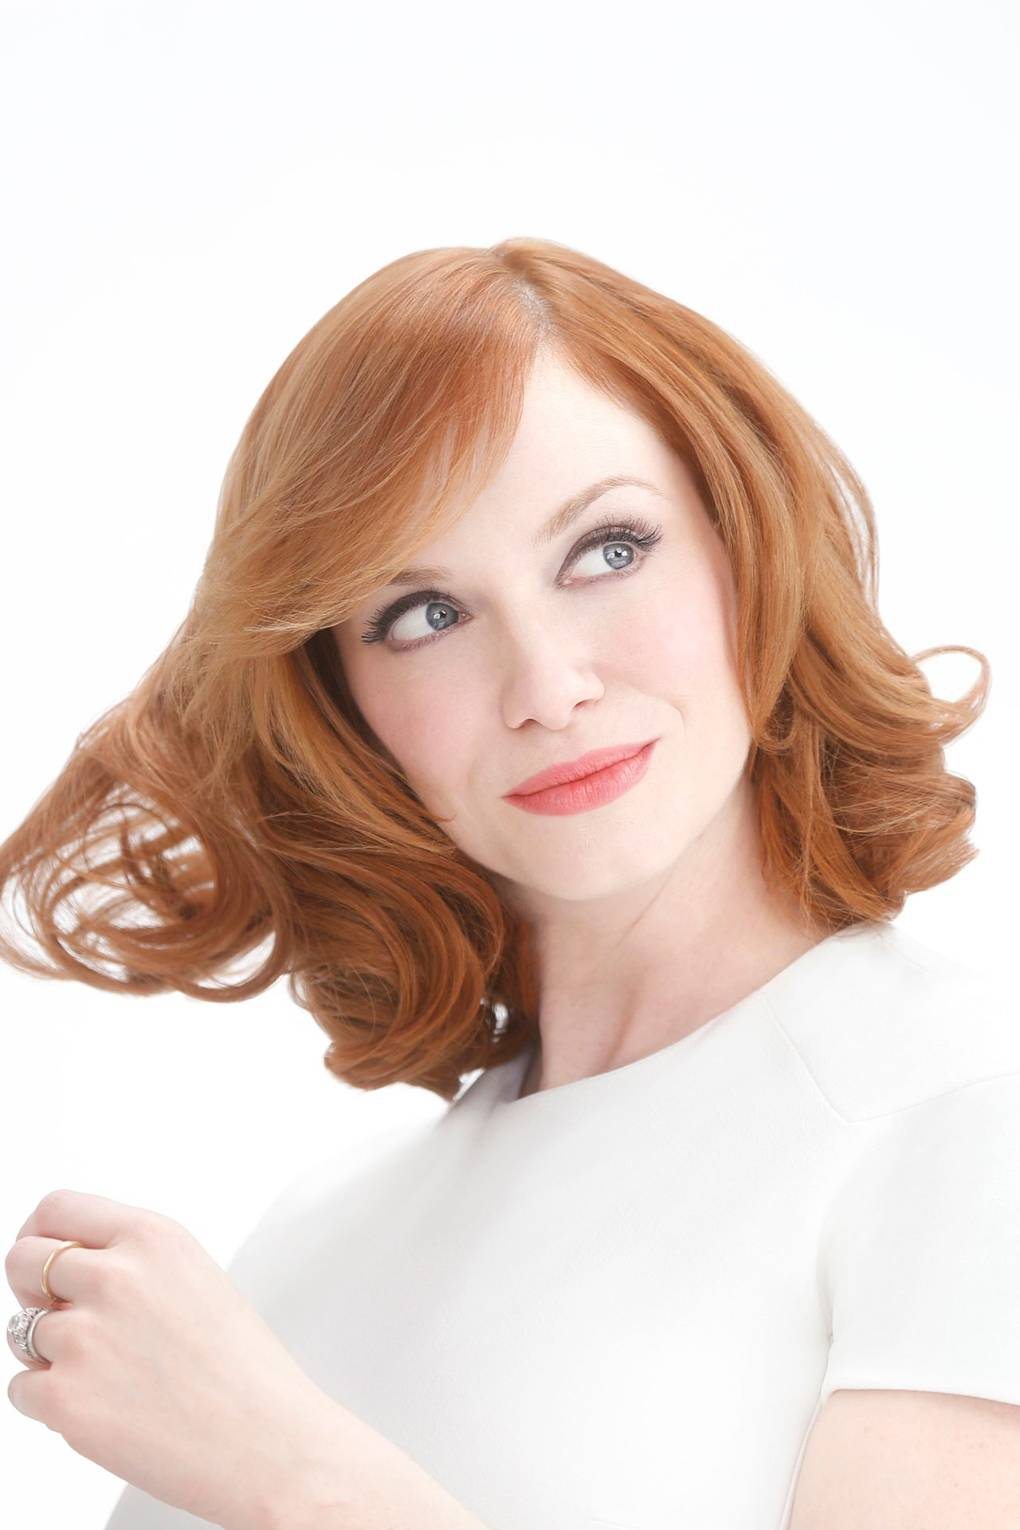 Christina Hendricks Not A Natural Redhead Nicen Easy Campaign